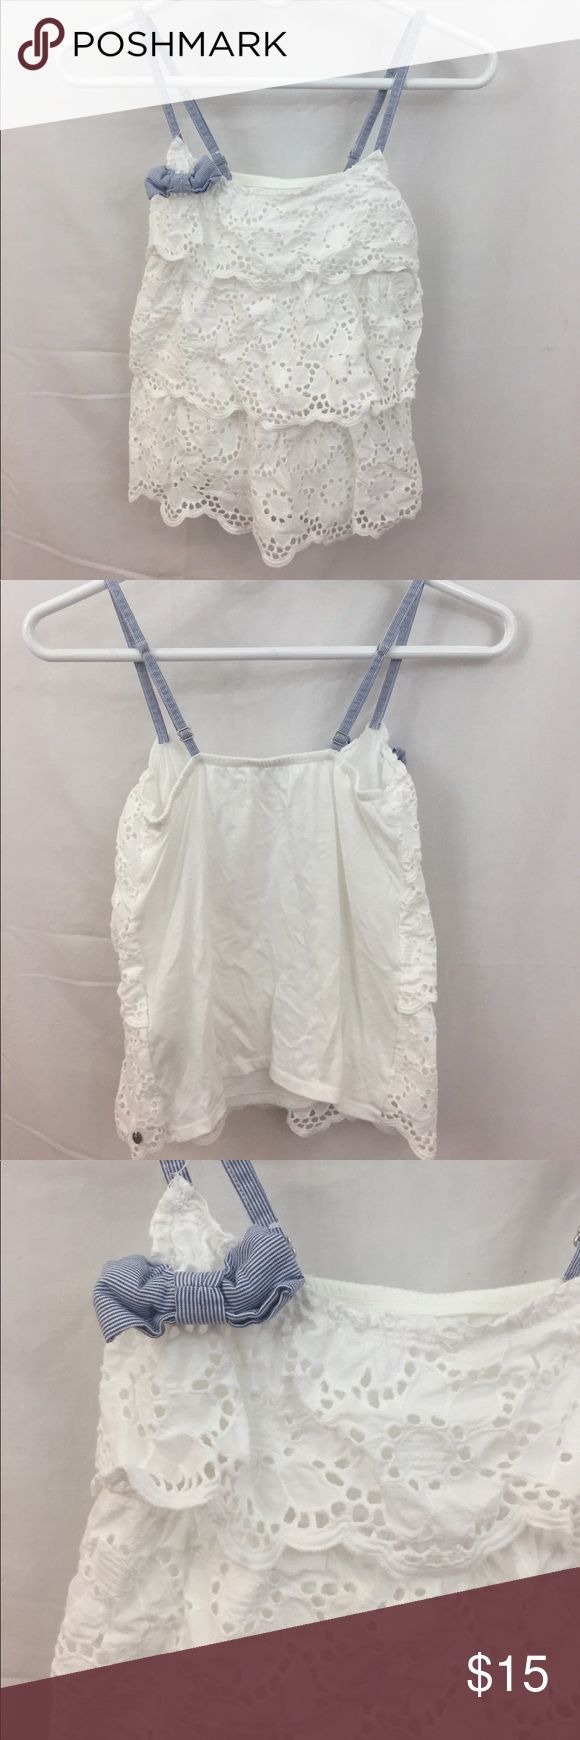 • Abercrombie & Fitch Lace Tank Top • Beautiful 3 layer lace tank top with blue bow! Super cute for summer! Like new, no rips or stains! Abercrombie & Fitch Tops Tank Tops